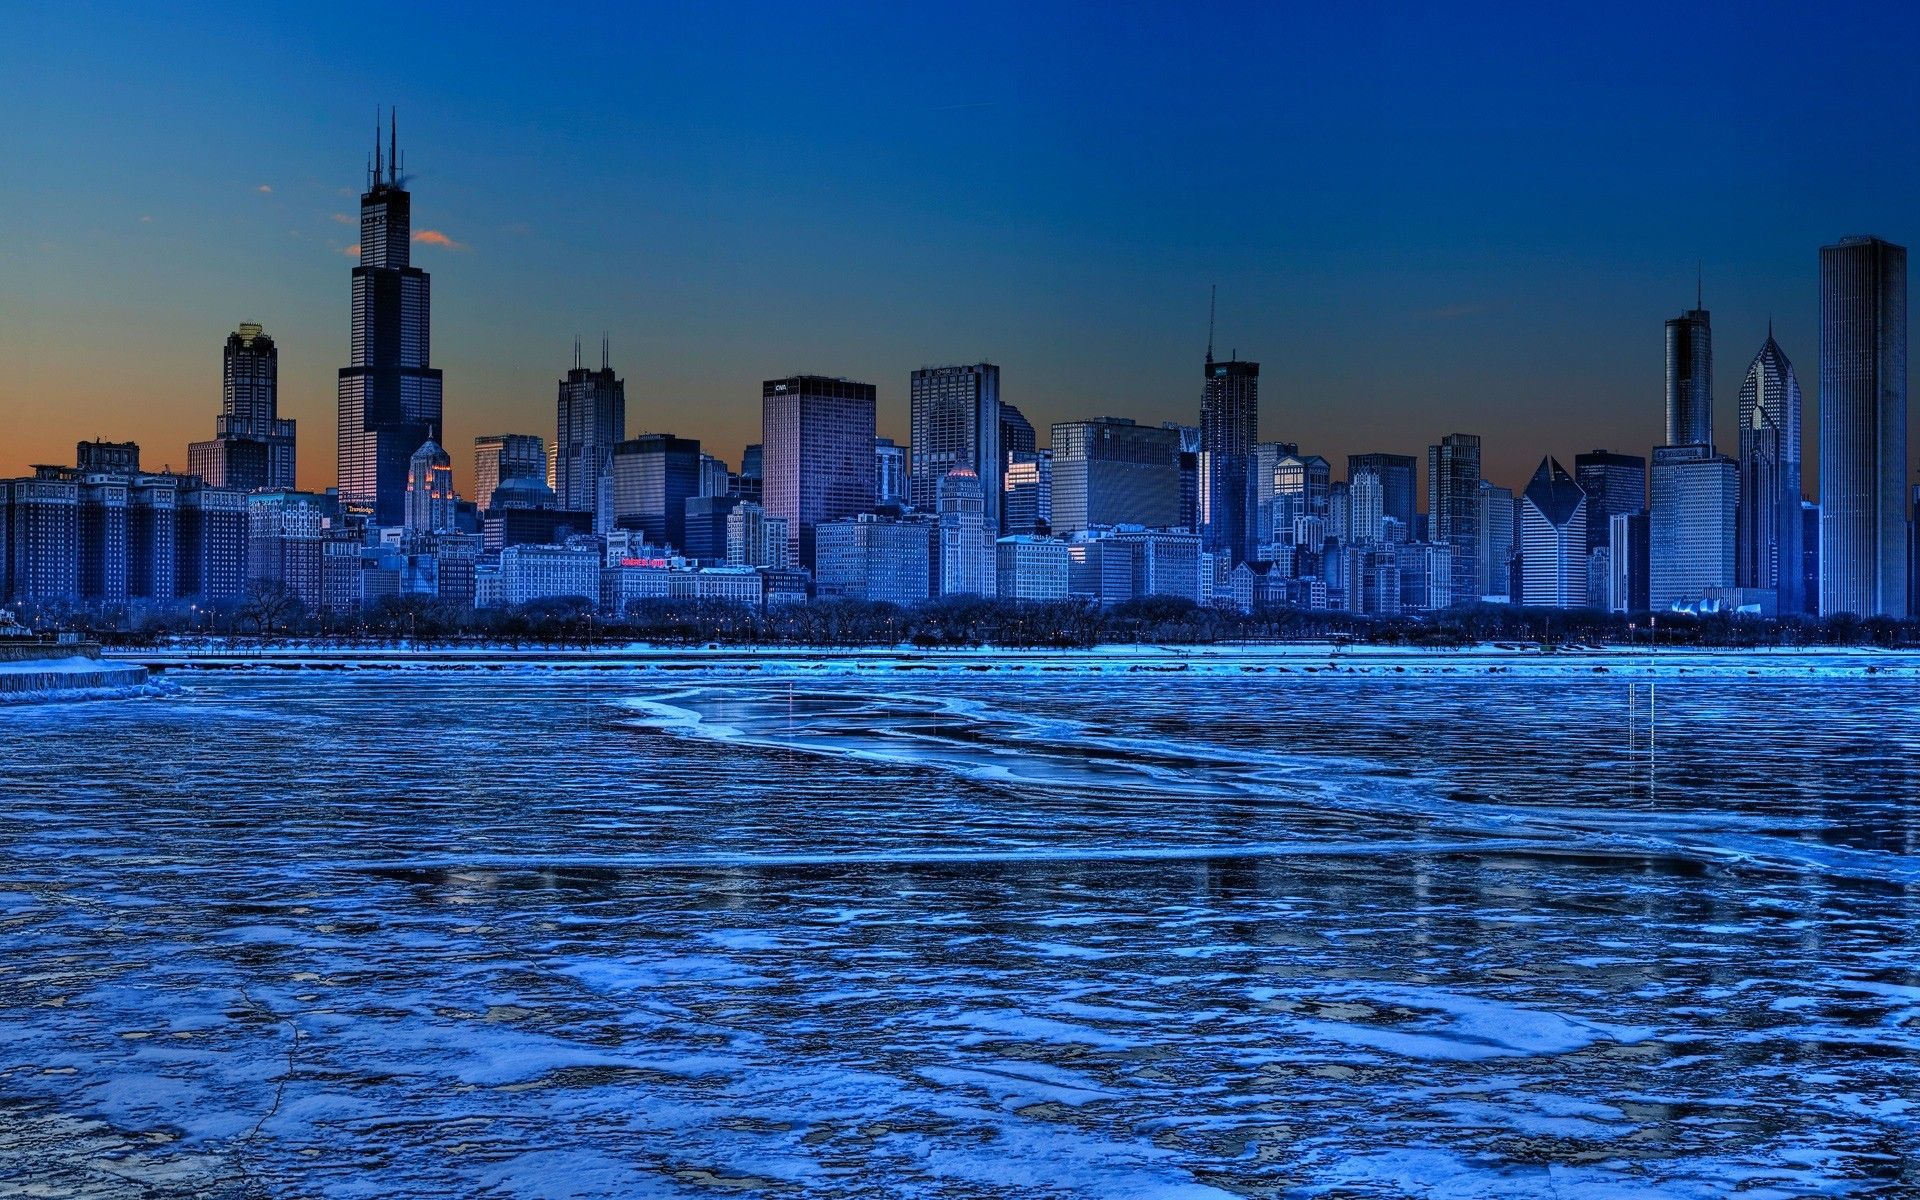 Christmas Downtown Chicago Wallpaper Wallpaper Free Download Chicago Wallpaper Milwaukee City Skyline Image